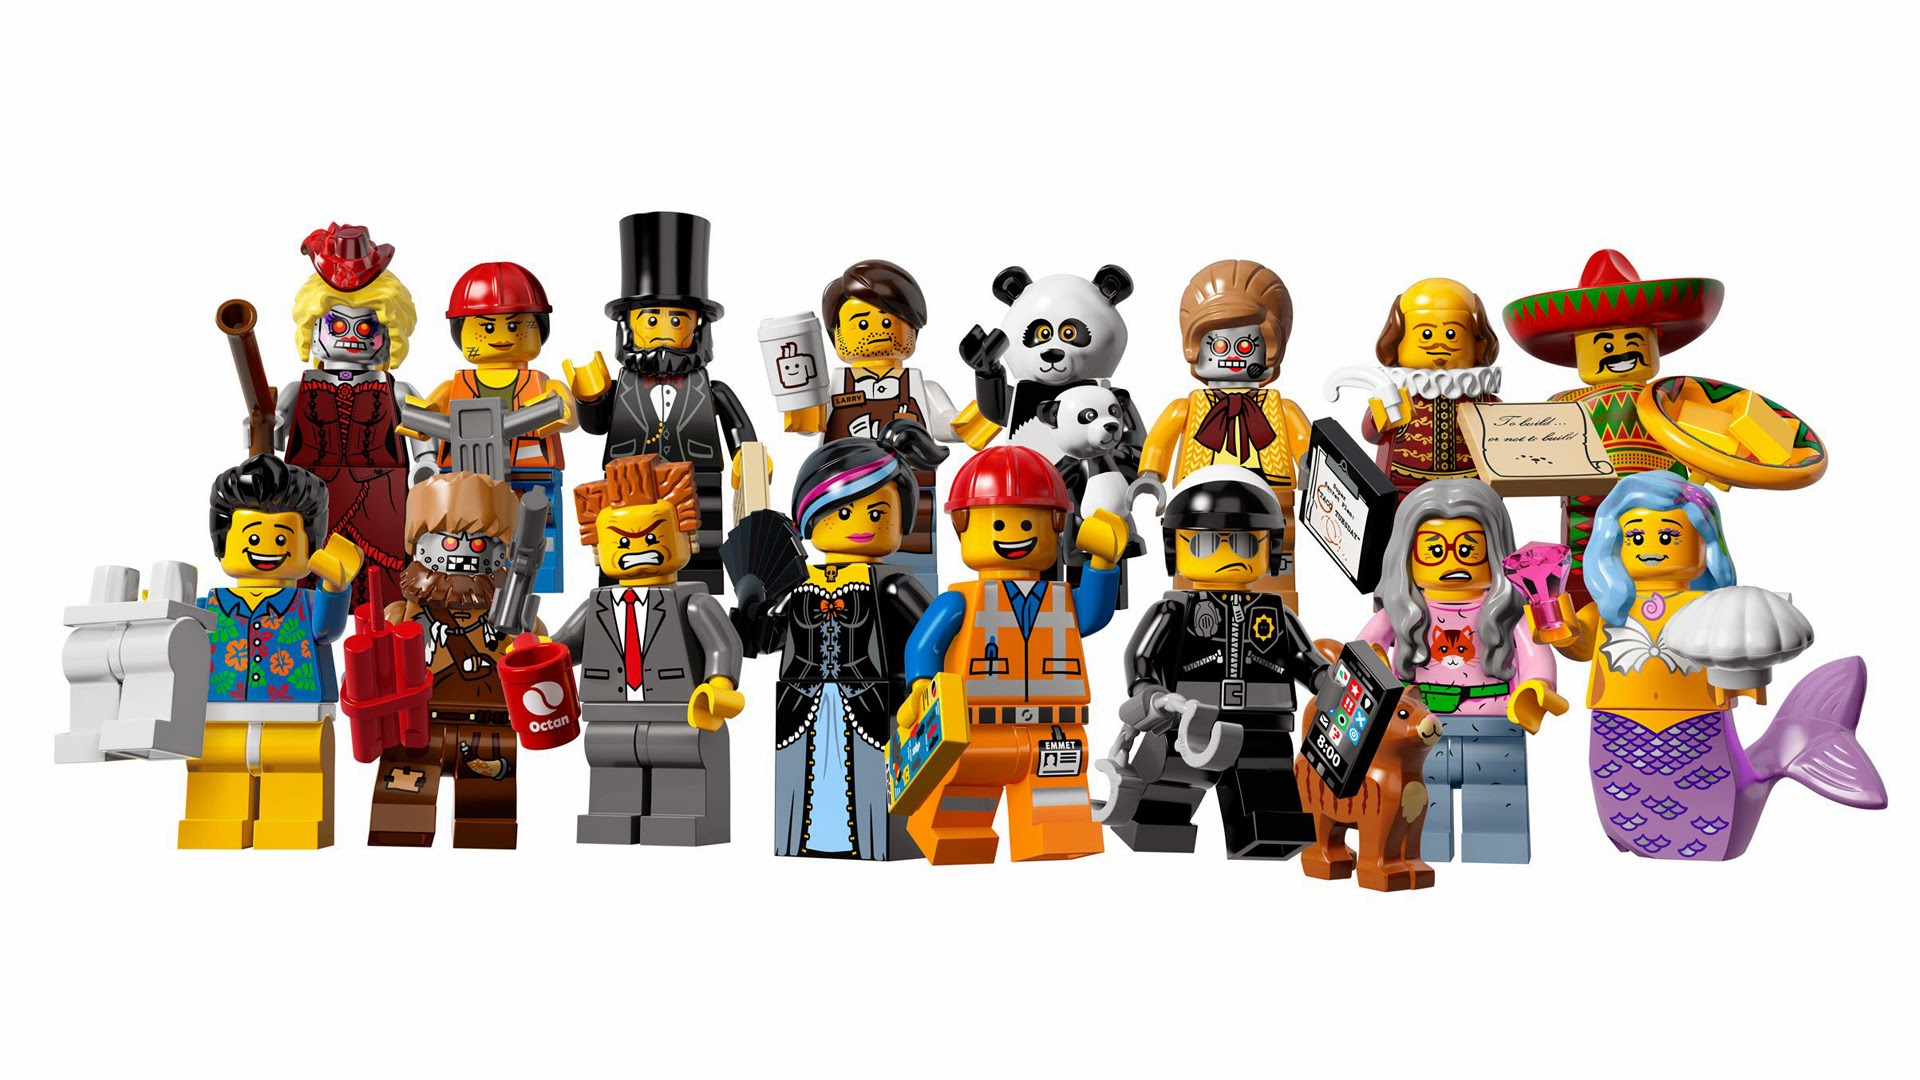 The Lego Movie Characters 9g